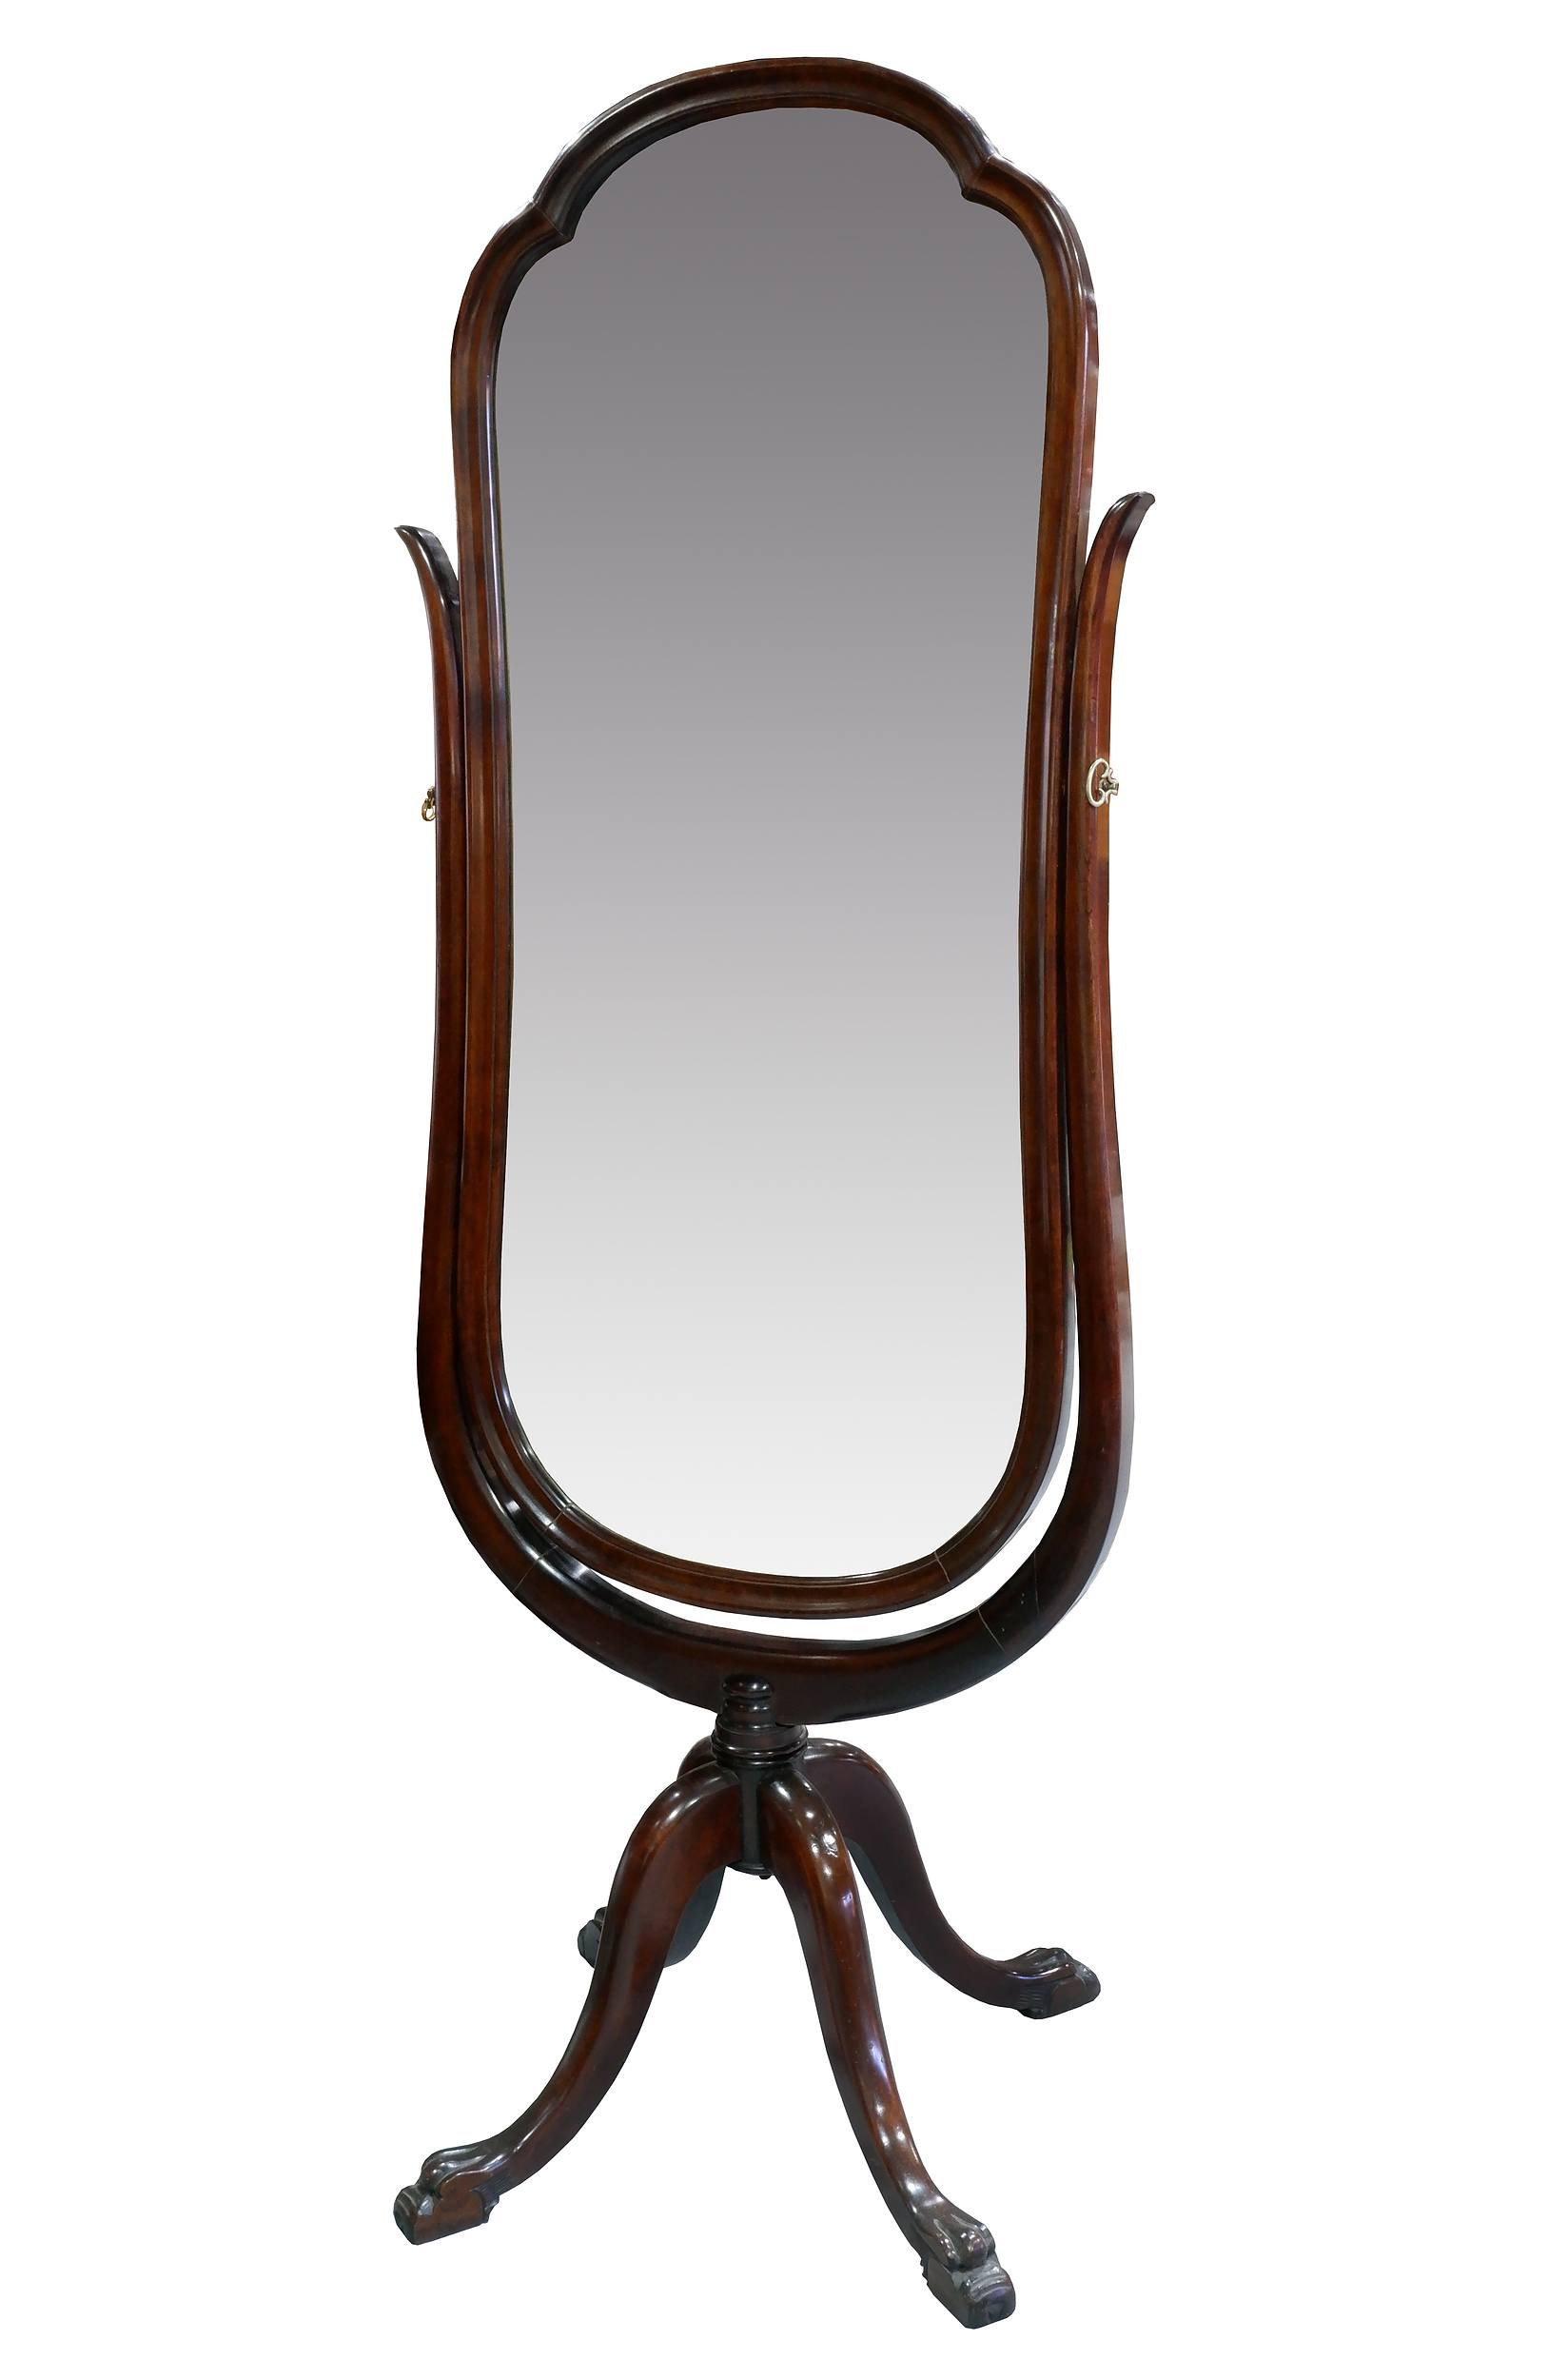 'Antique DCW& Co Cheval Mirror in Cherrywood on Claw Feet, Early 20th Century'